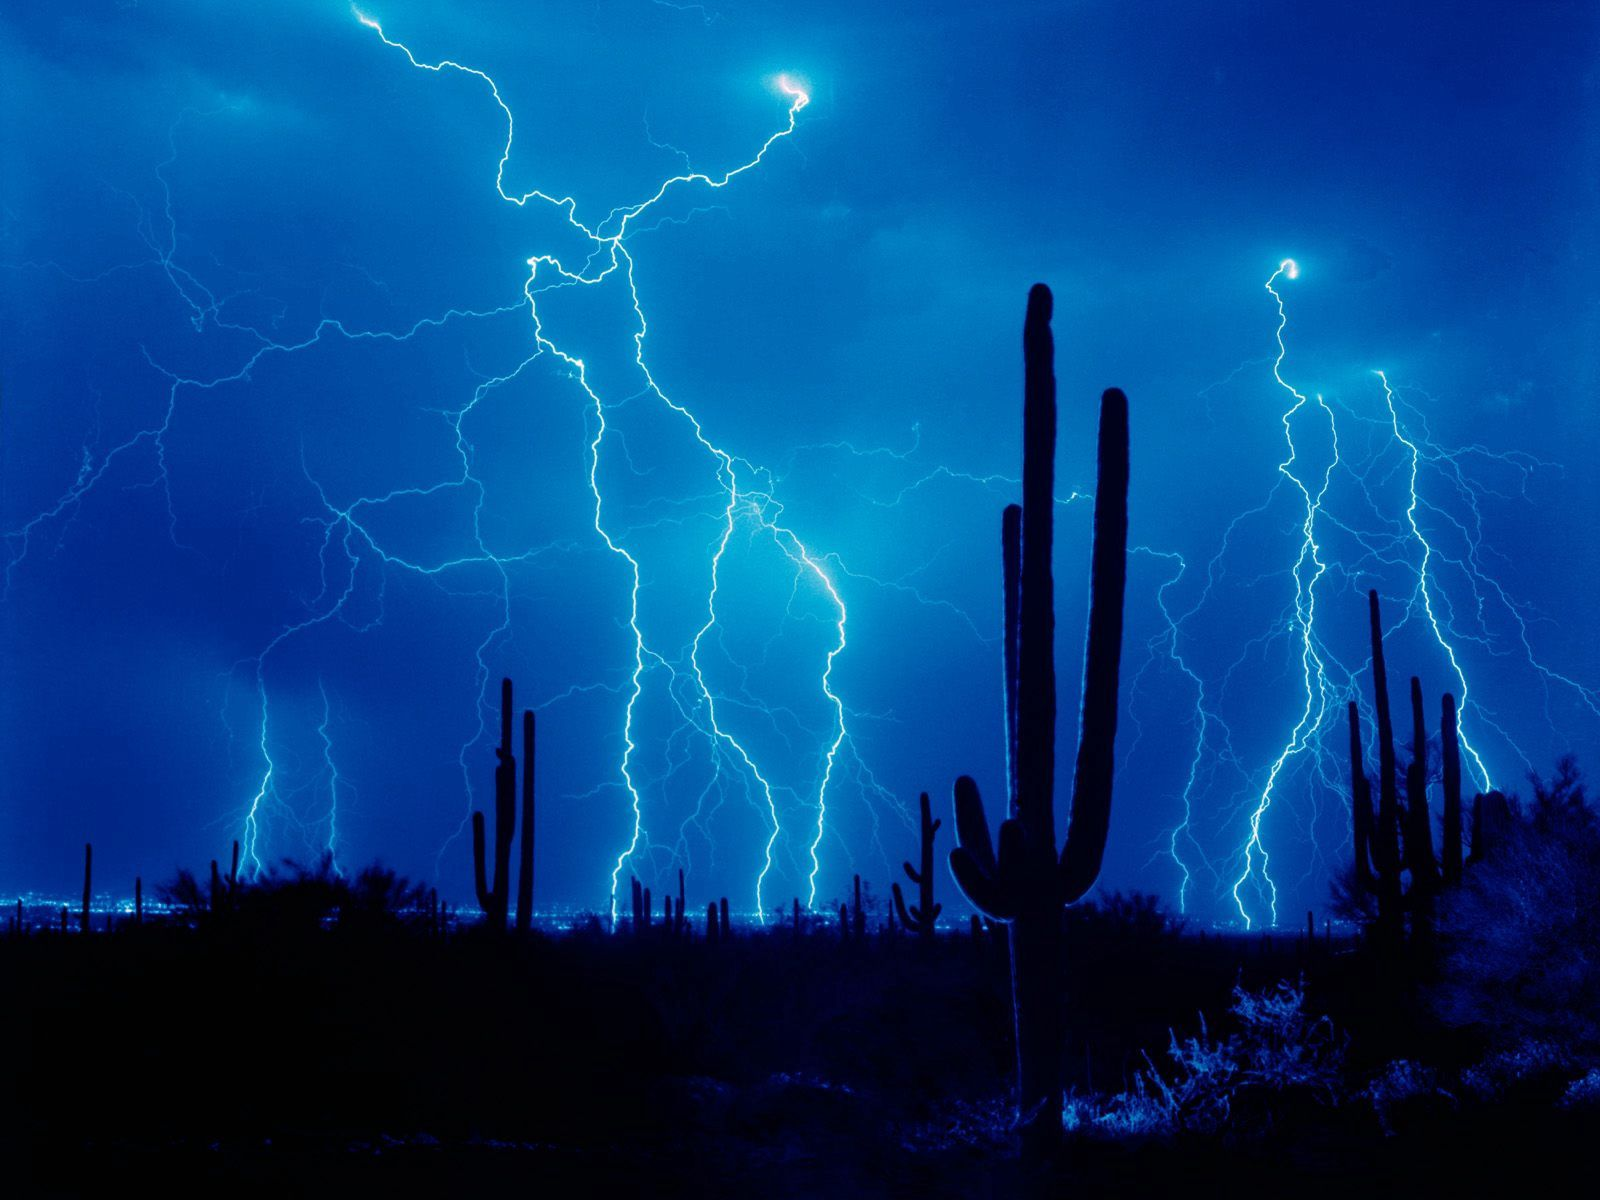 54436 download wallpaper Nature, Cactuses, Sky, Lightning, Desert, Element, Outlines, Storm, Thunderstorm screensavers and pictures for free